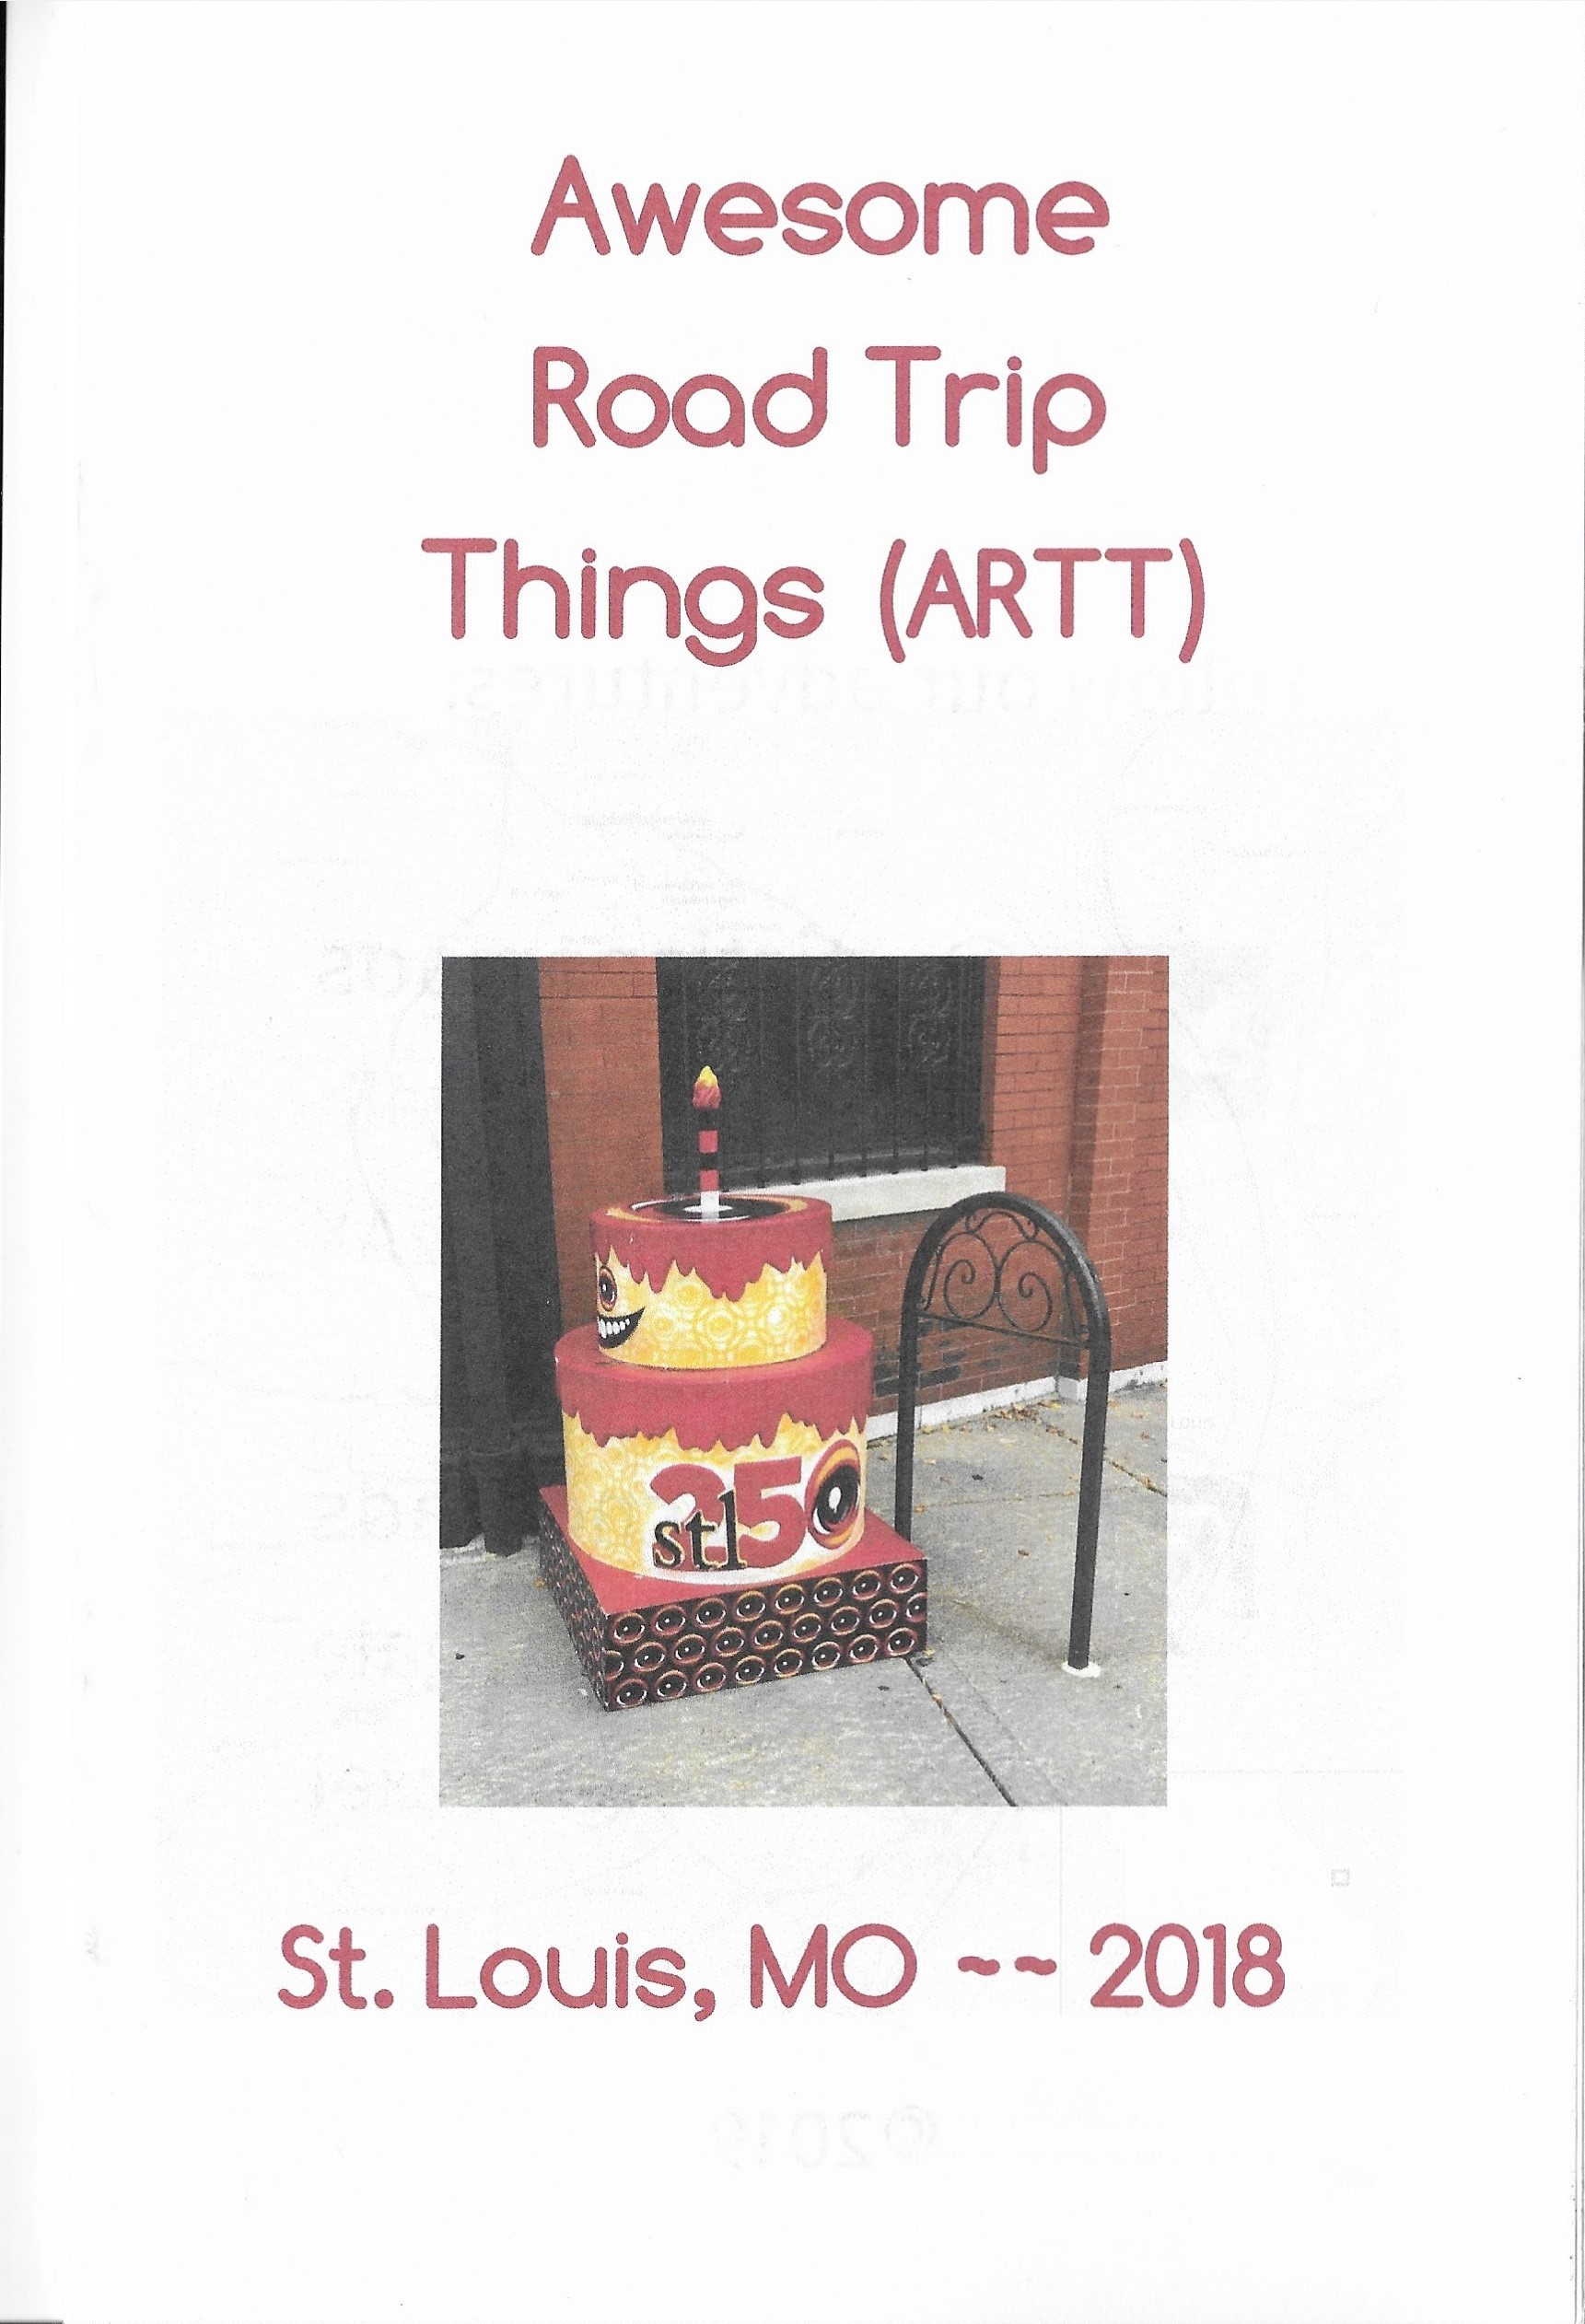 Awesome Road Trip Things from St. Louis MO, During our road trips we blogged on Instagram all the awesome road trip things we found. Then we turned this into a Zine. This zine is a collection of memories from St. Louis Mo. copyright Artistic Nomads 2018 2018,